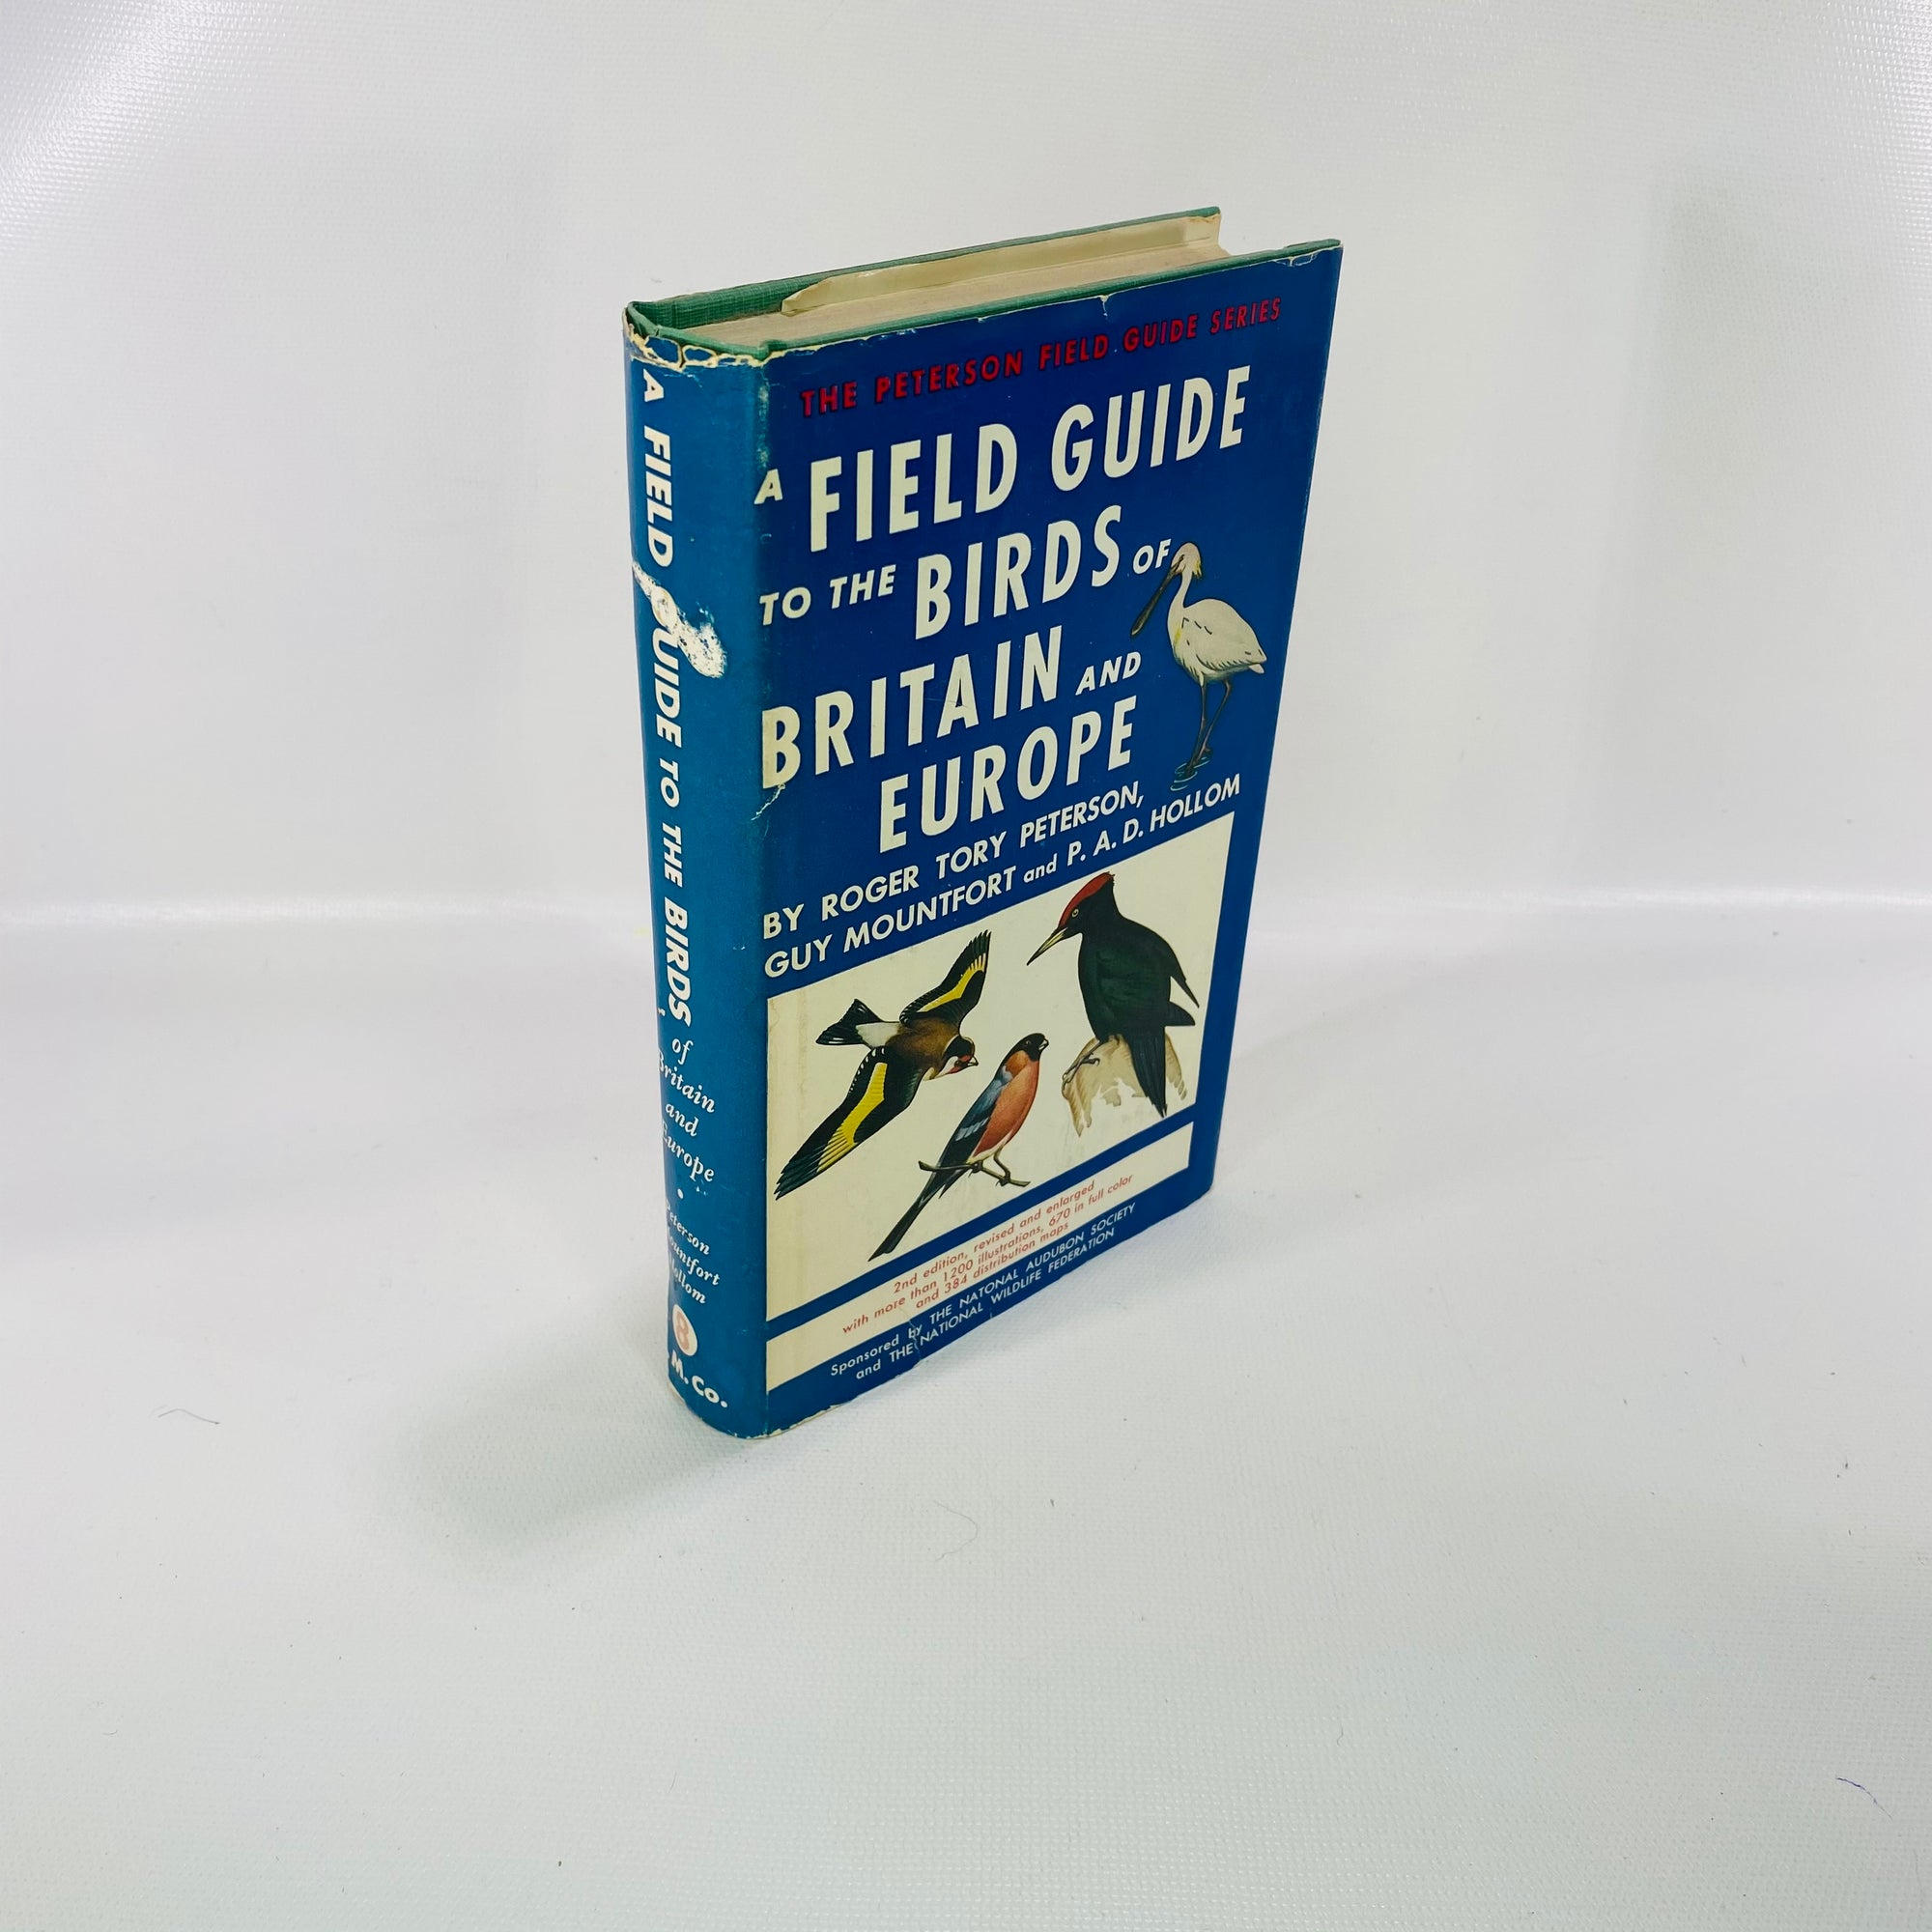 Field Guide Birds of Britain & Europe by R Peterson 1967-Reading Vintage